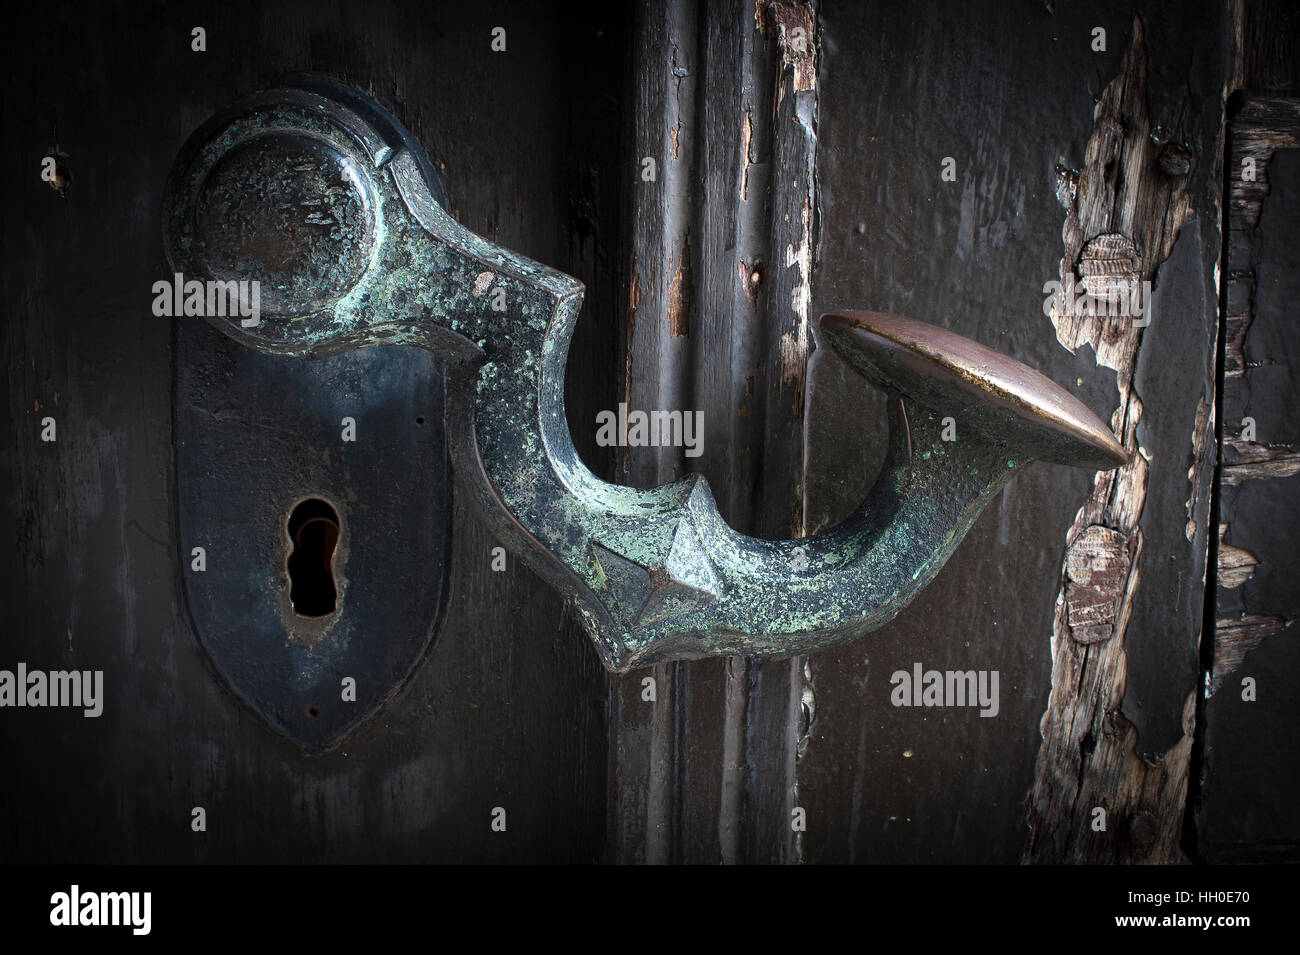 A door handle at a Museum. - Stock Image